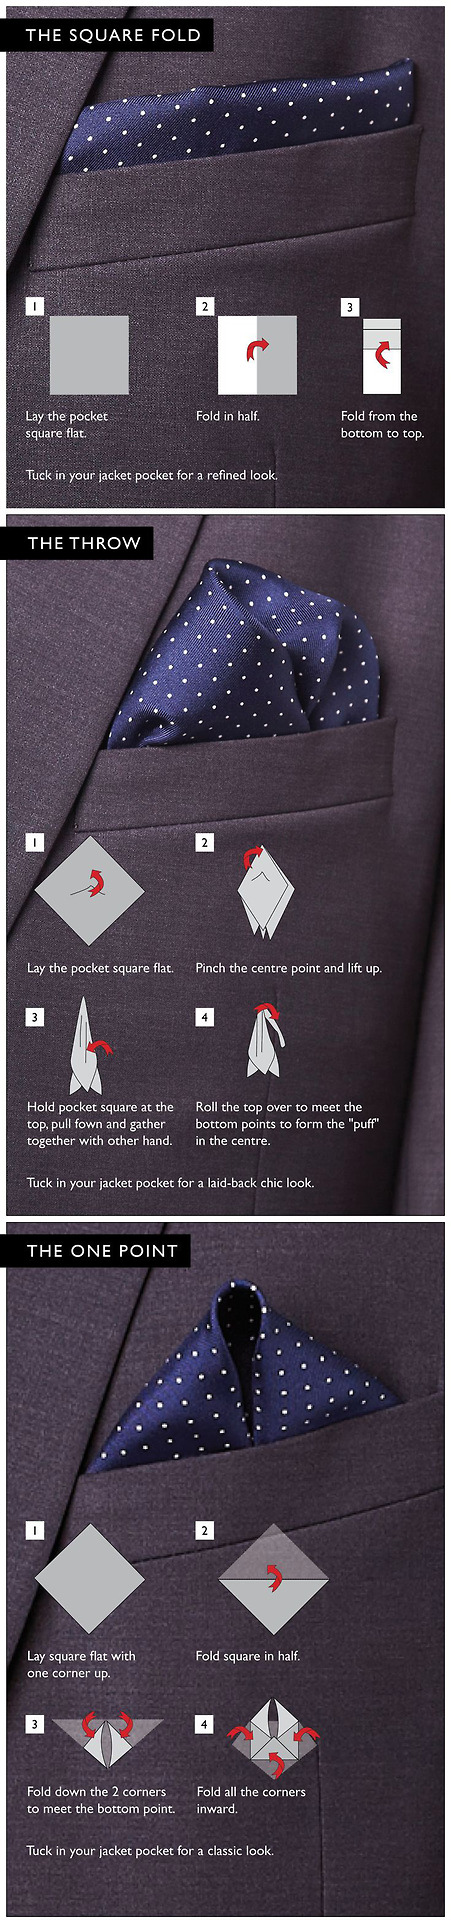 Pocket Square tutorial Via | Just Me - My Style | Pinterest | Pocket ...